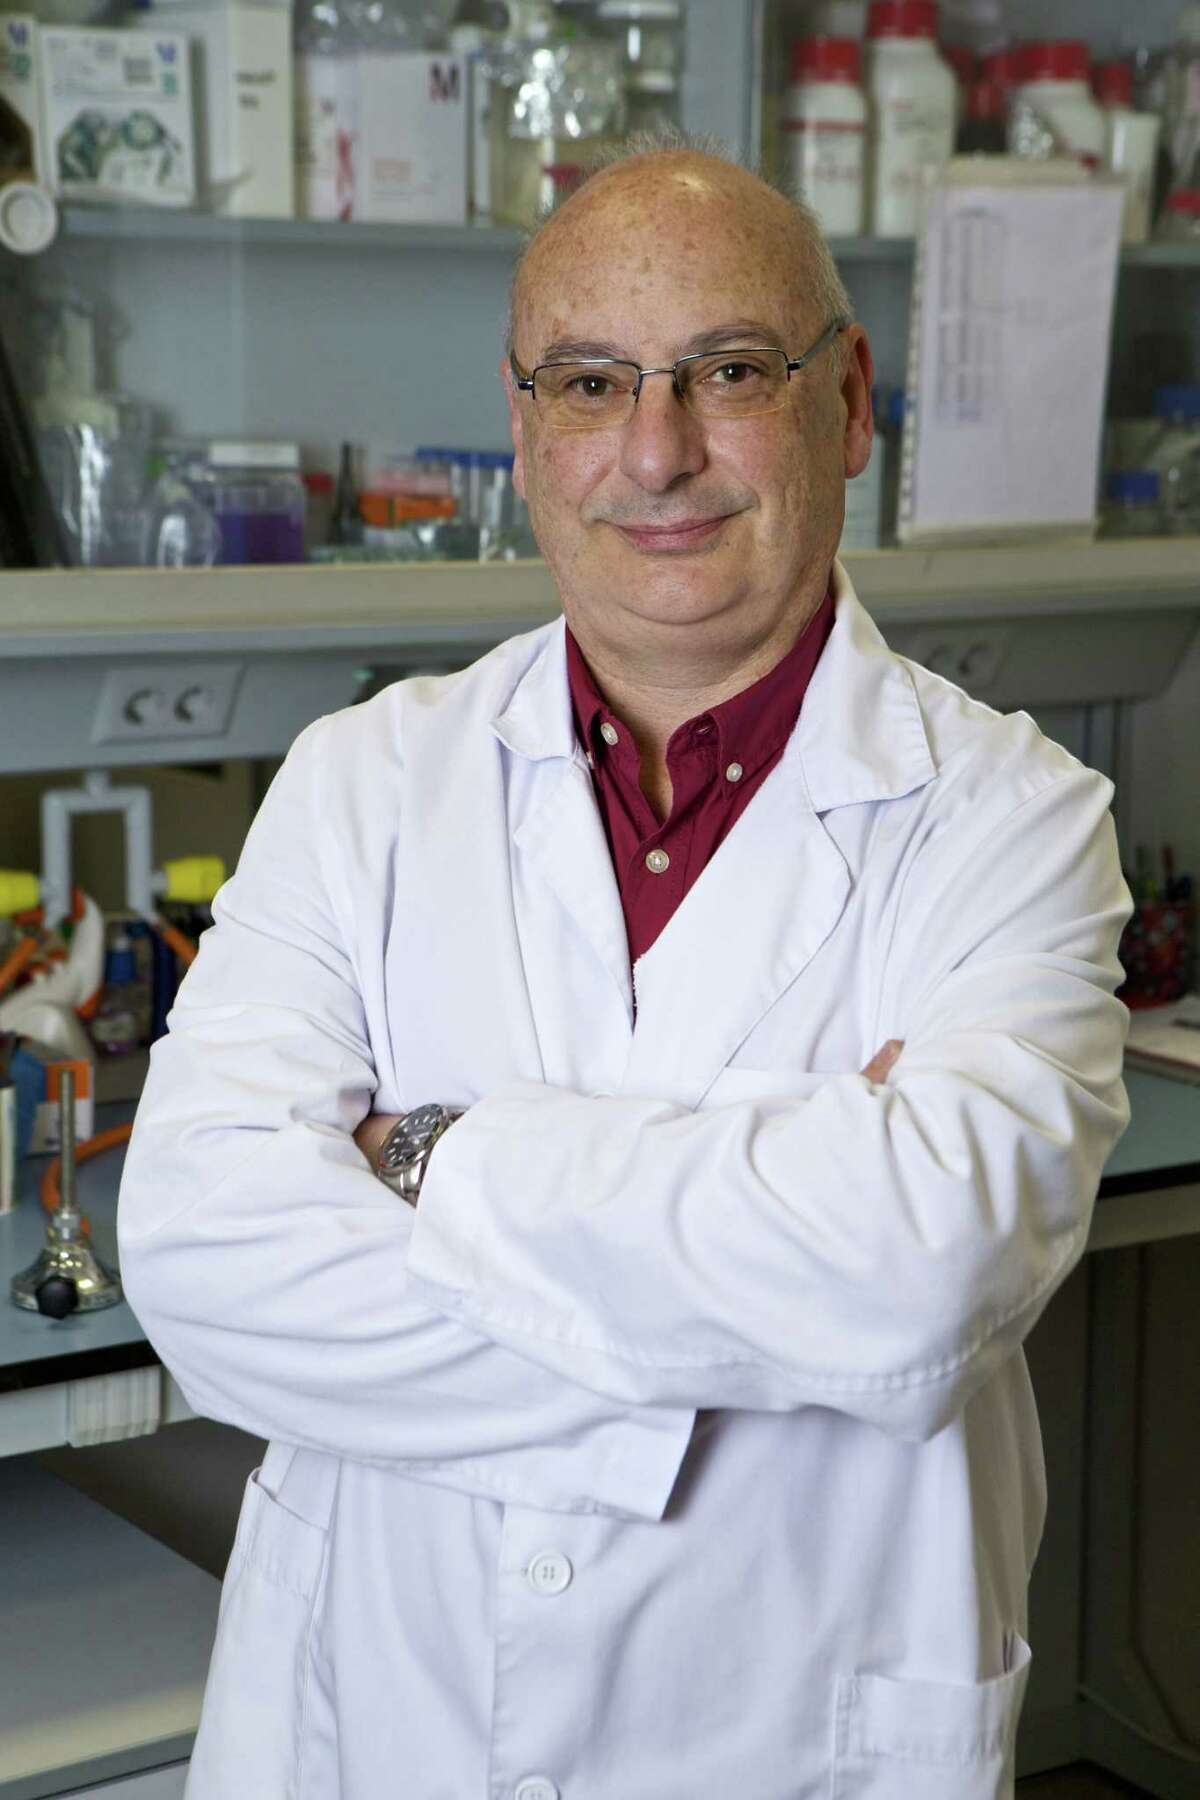 Francisco J.M. Mojica, Ph.D., associate professor of Microbiology, Department of Physiology, Genetics and Microbiology, University of Alicante, Spain member, Multidisciplinary Institute for the Study of the Environment Ramon Margalef, Spain. (University of Alicante)